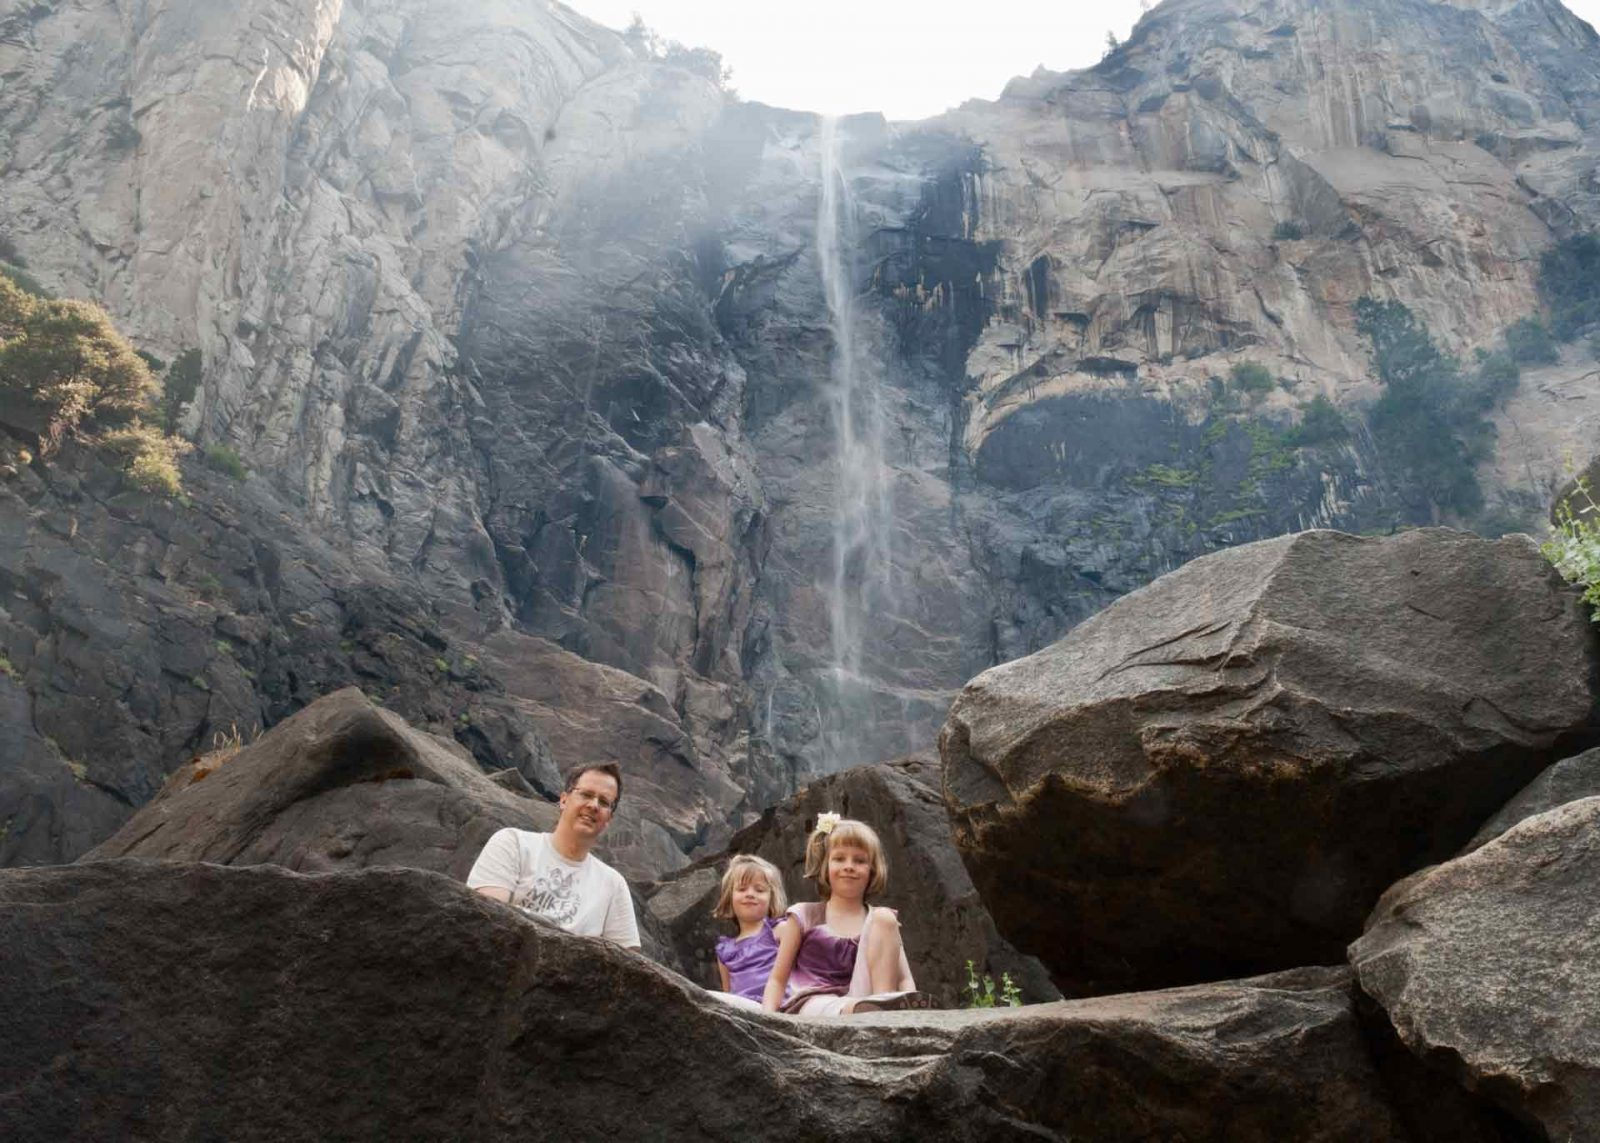 A Family Trip to Yosemite with Forest Fires and Photography on Falcondale Life Blog. Smoke from Big Meadow Fire 2009 and waterfall